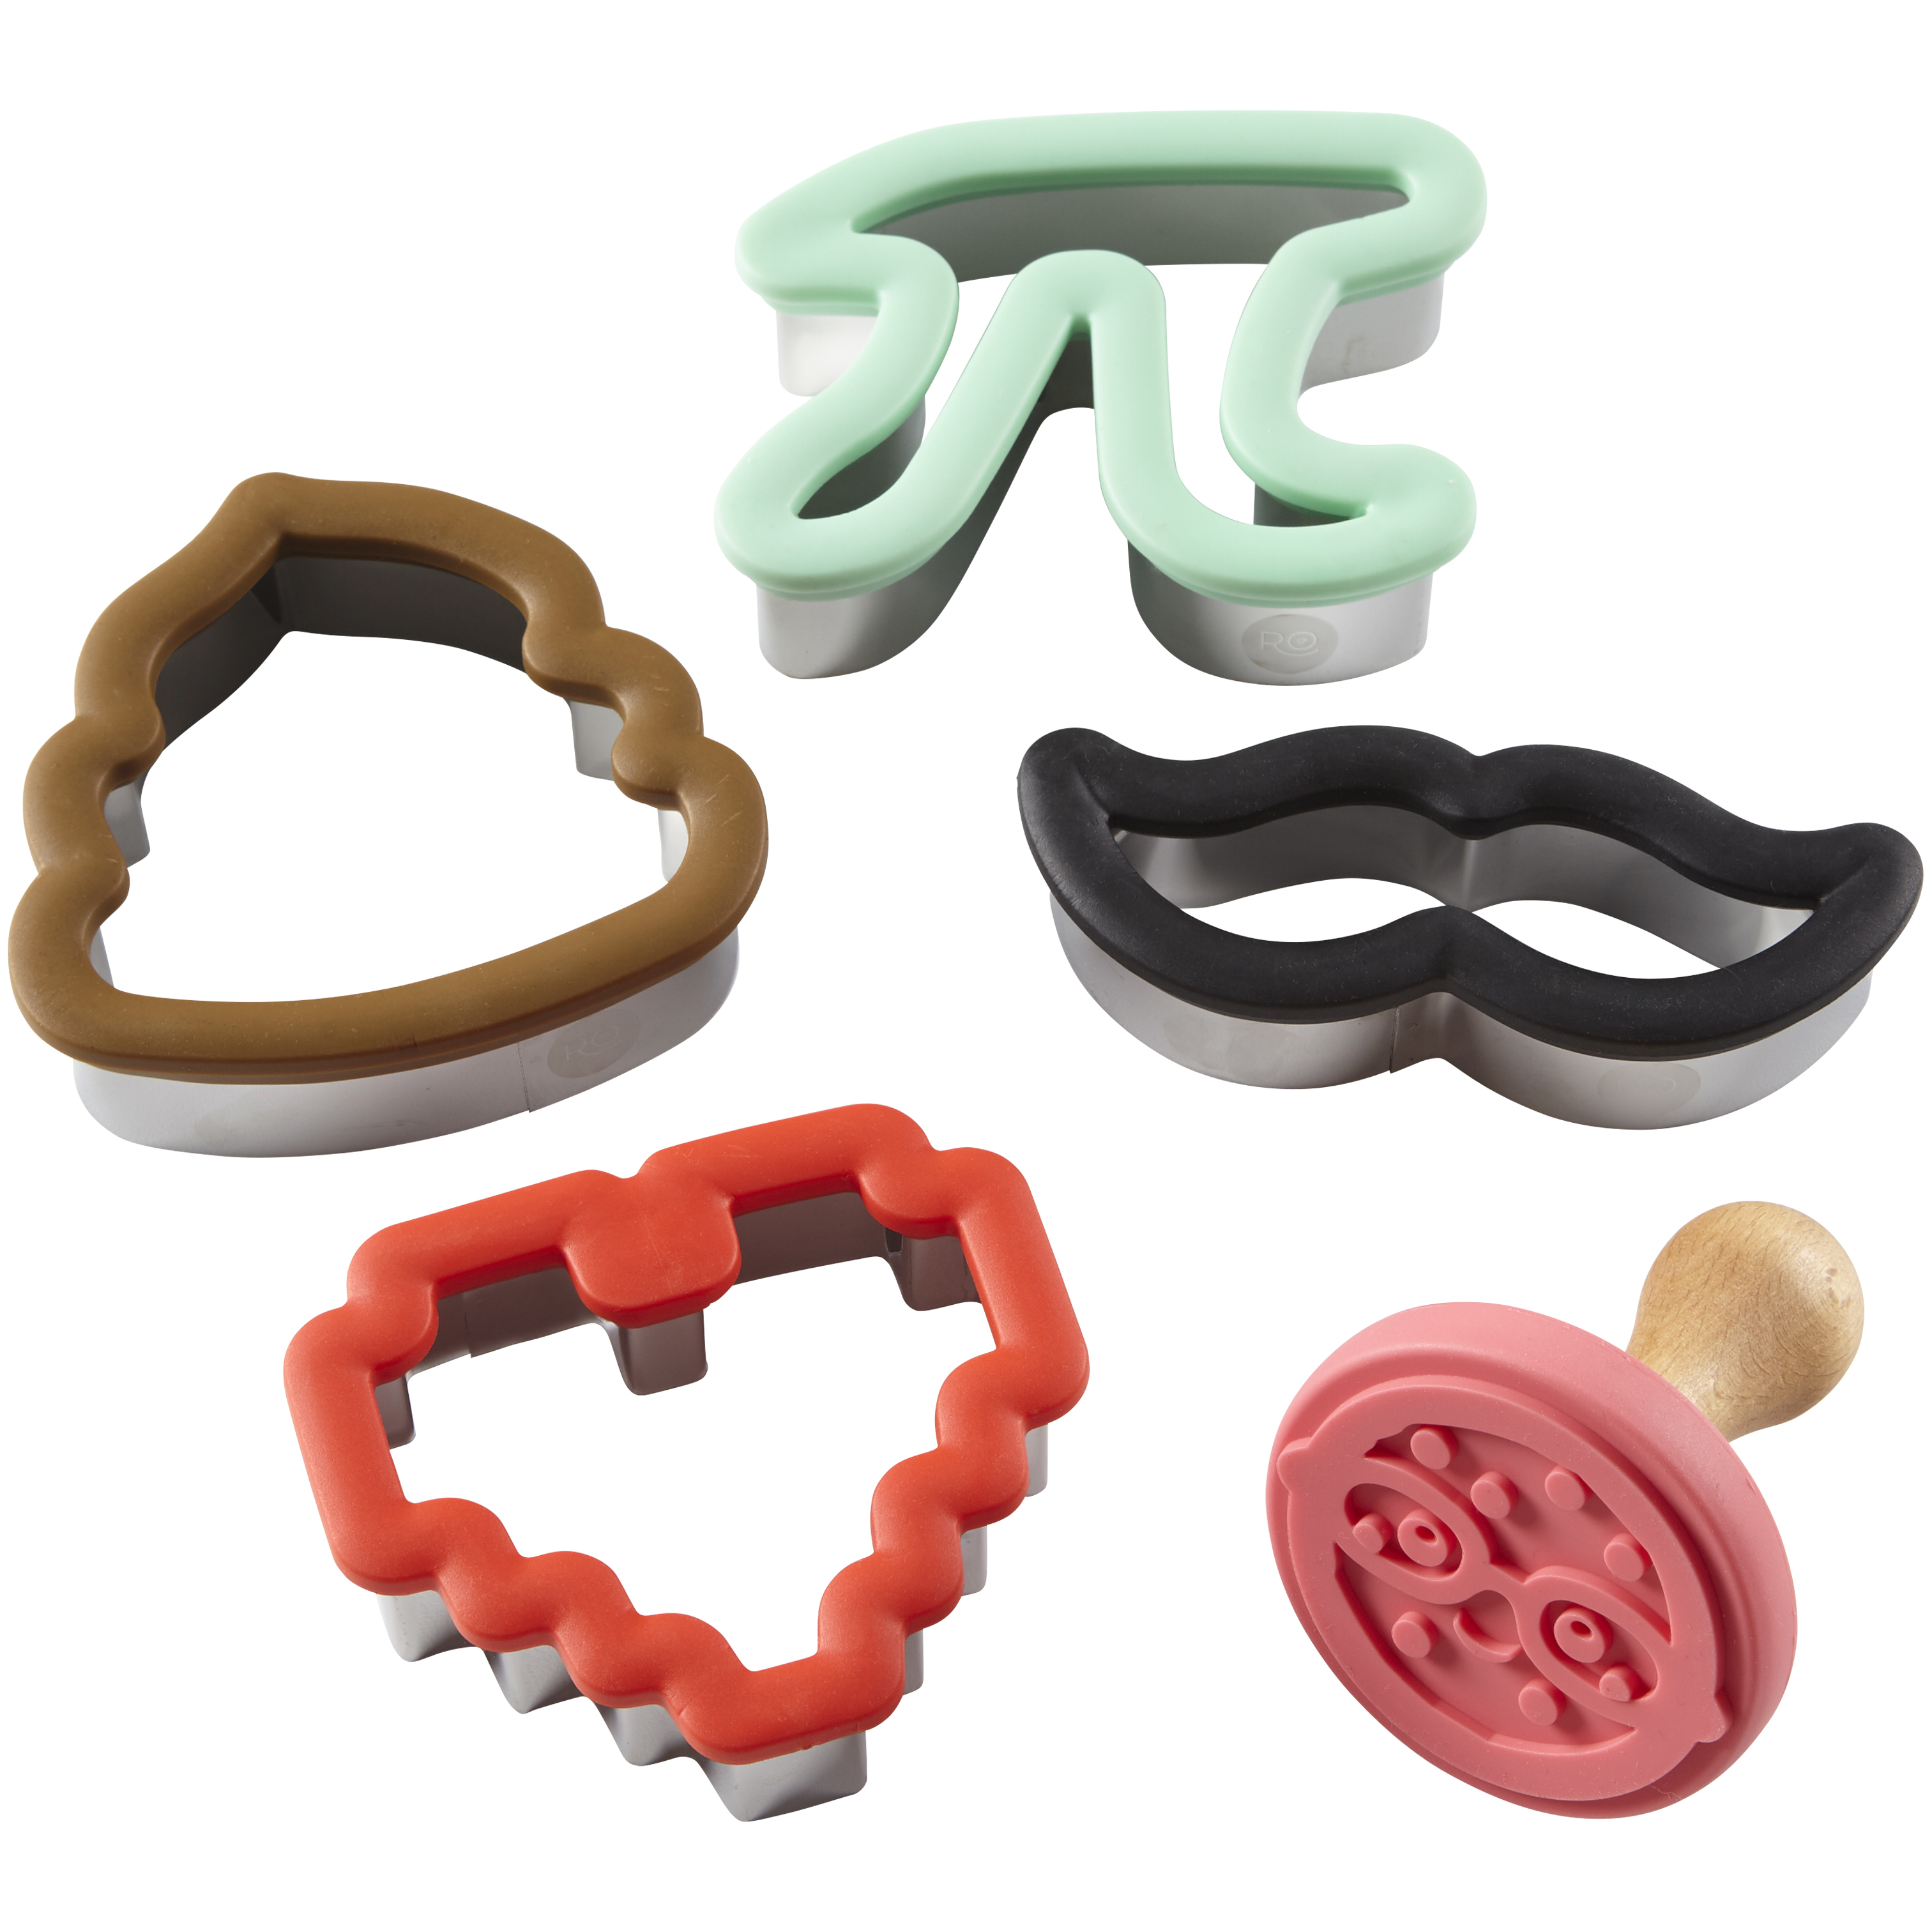 Wilton Rosanna Pansino Nerdy Nummies Crazy for Cookies Set